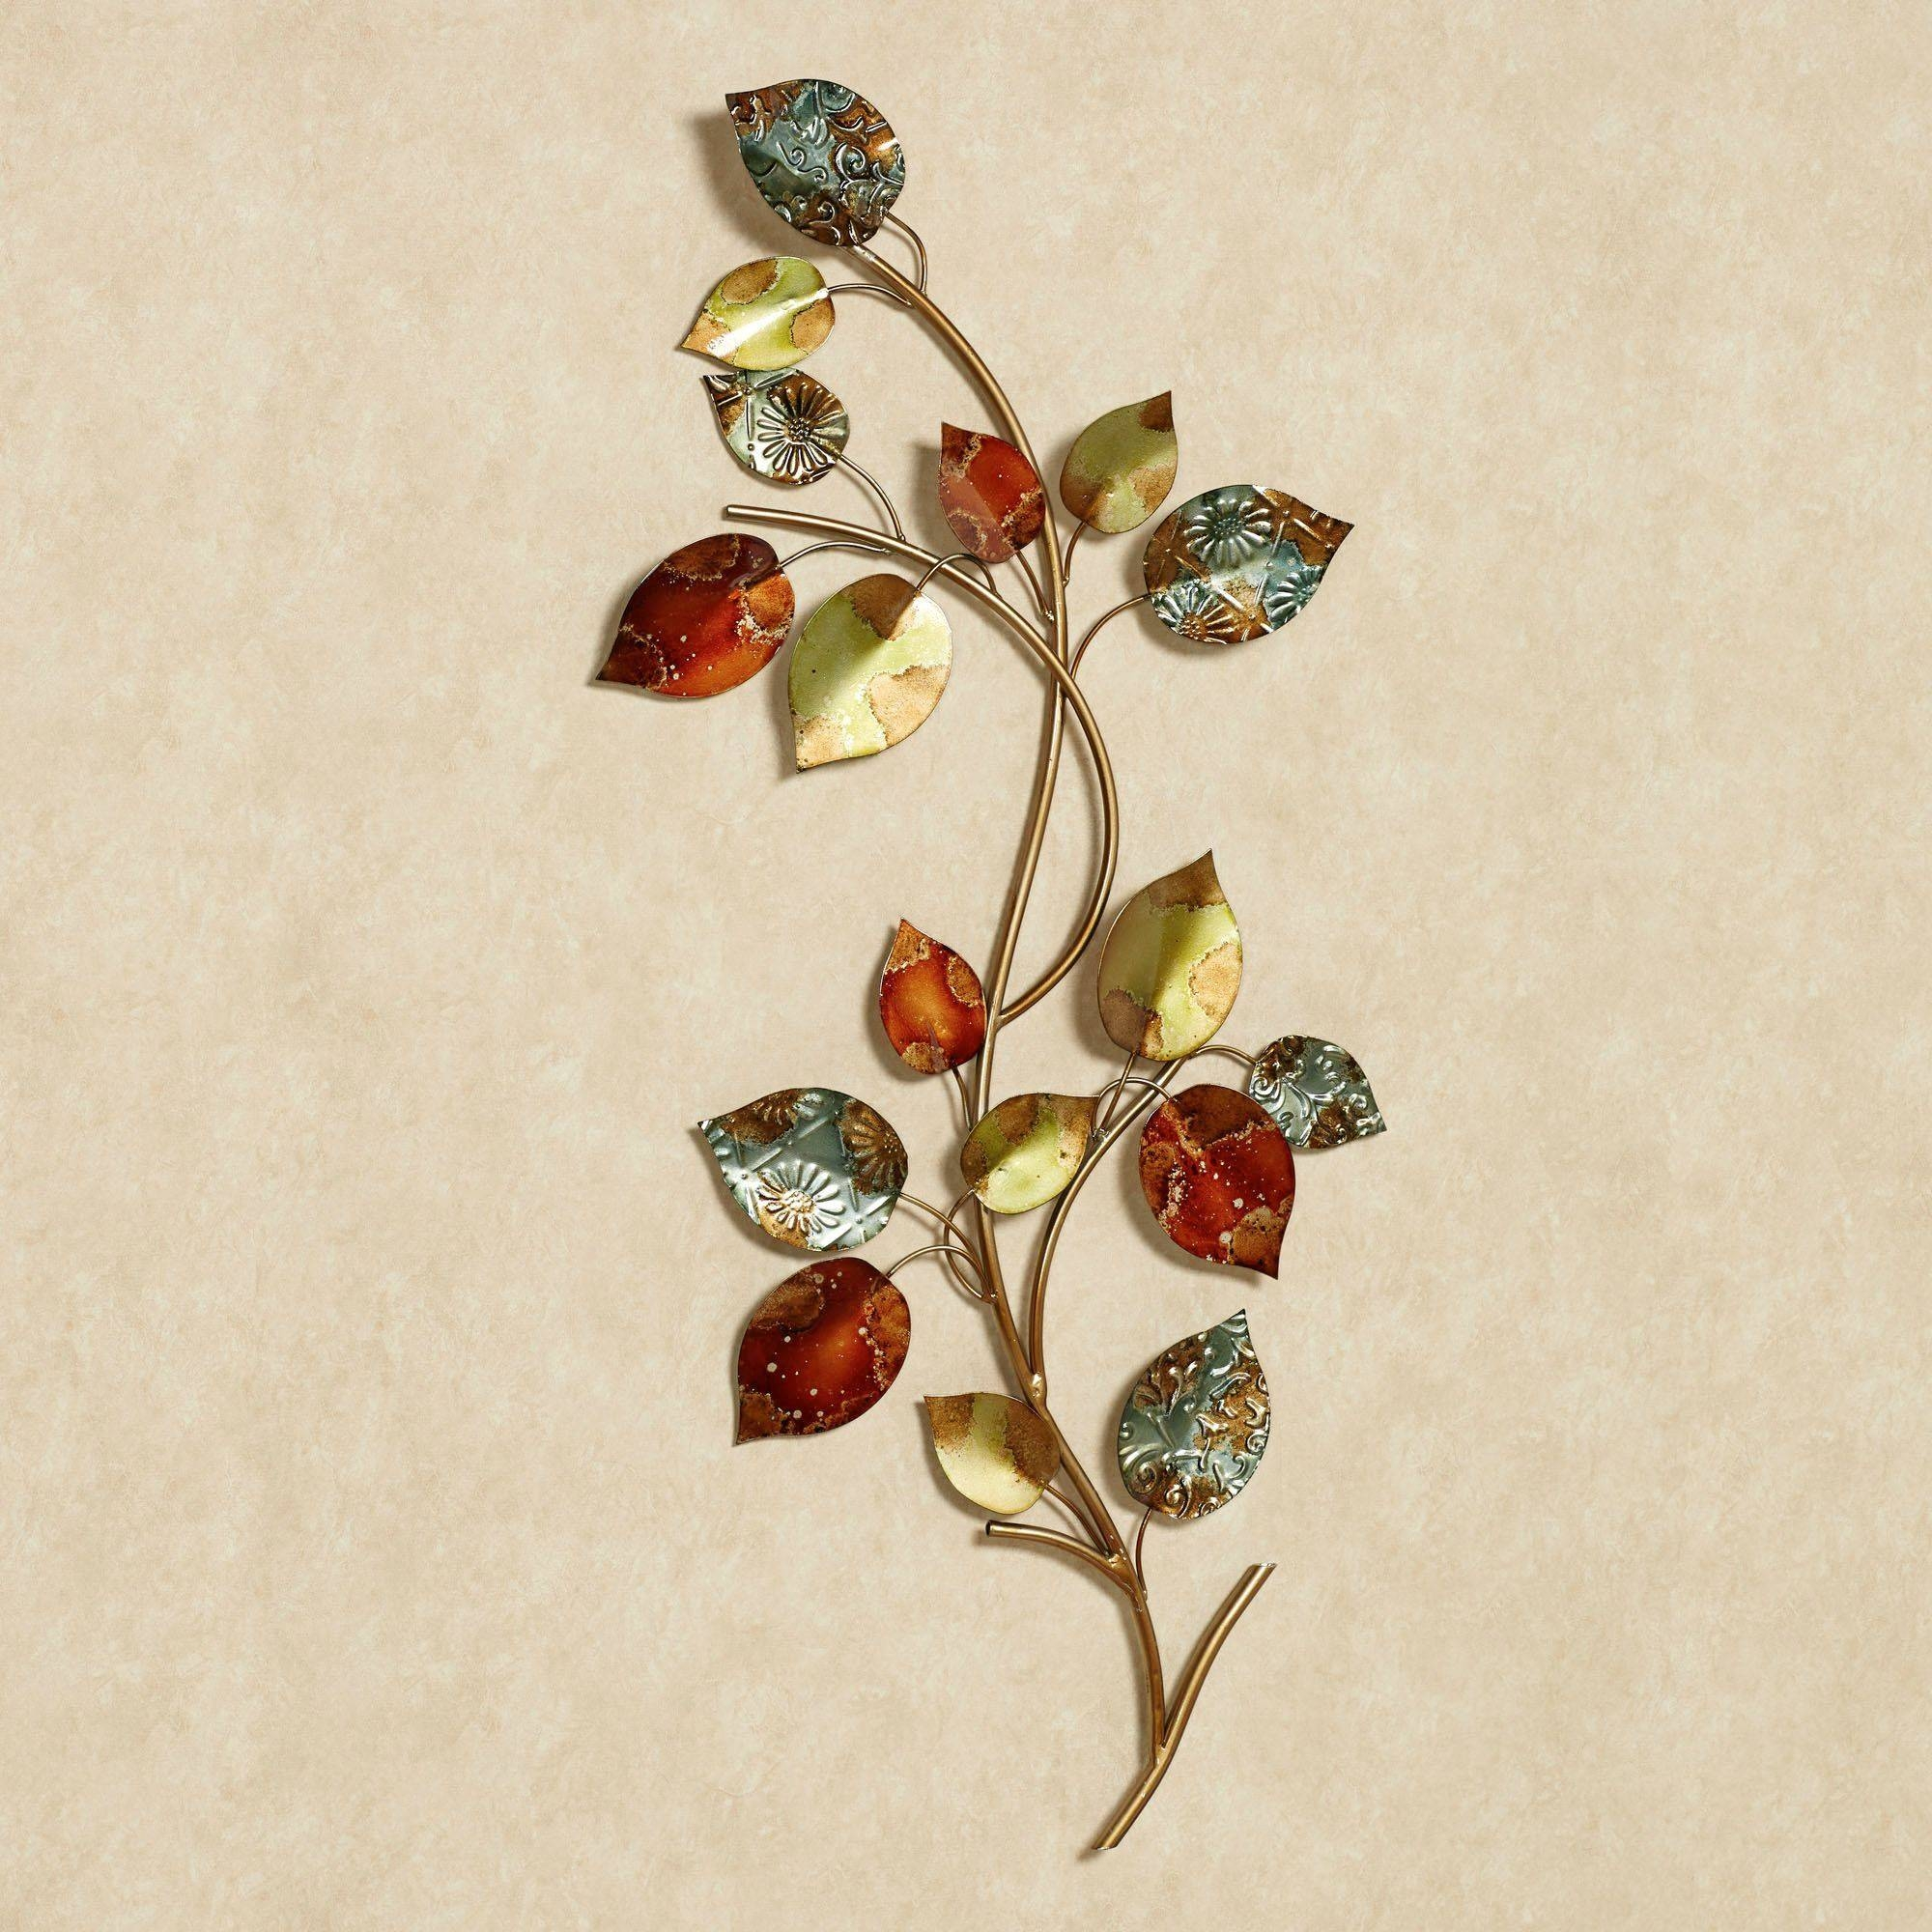 Autumn Array Leaf Branch Metal Wall Art Pertaining To Most Up To Date Metal Wall Art Leaves (View 3 of 20)